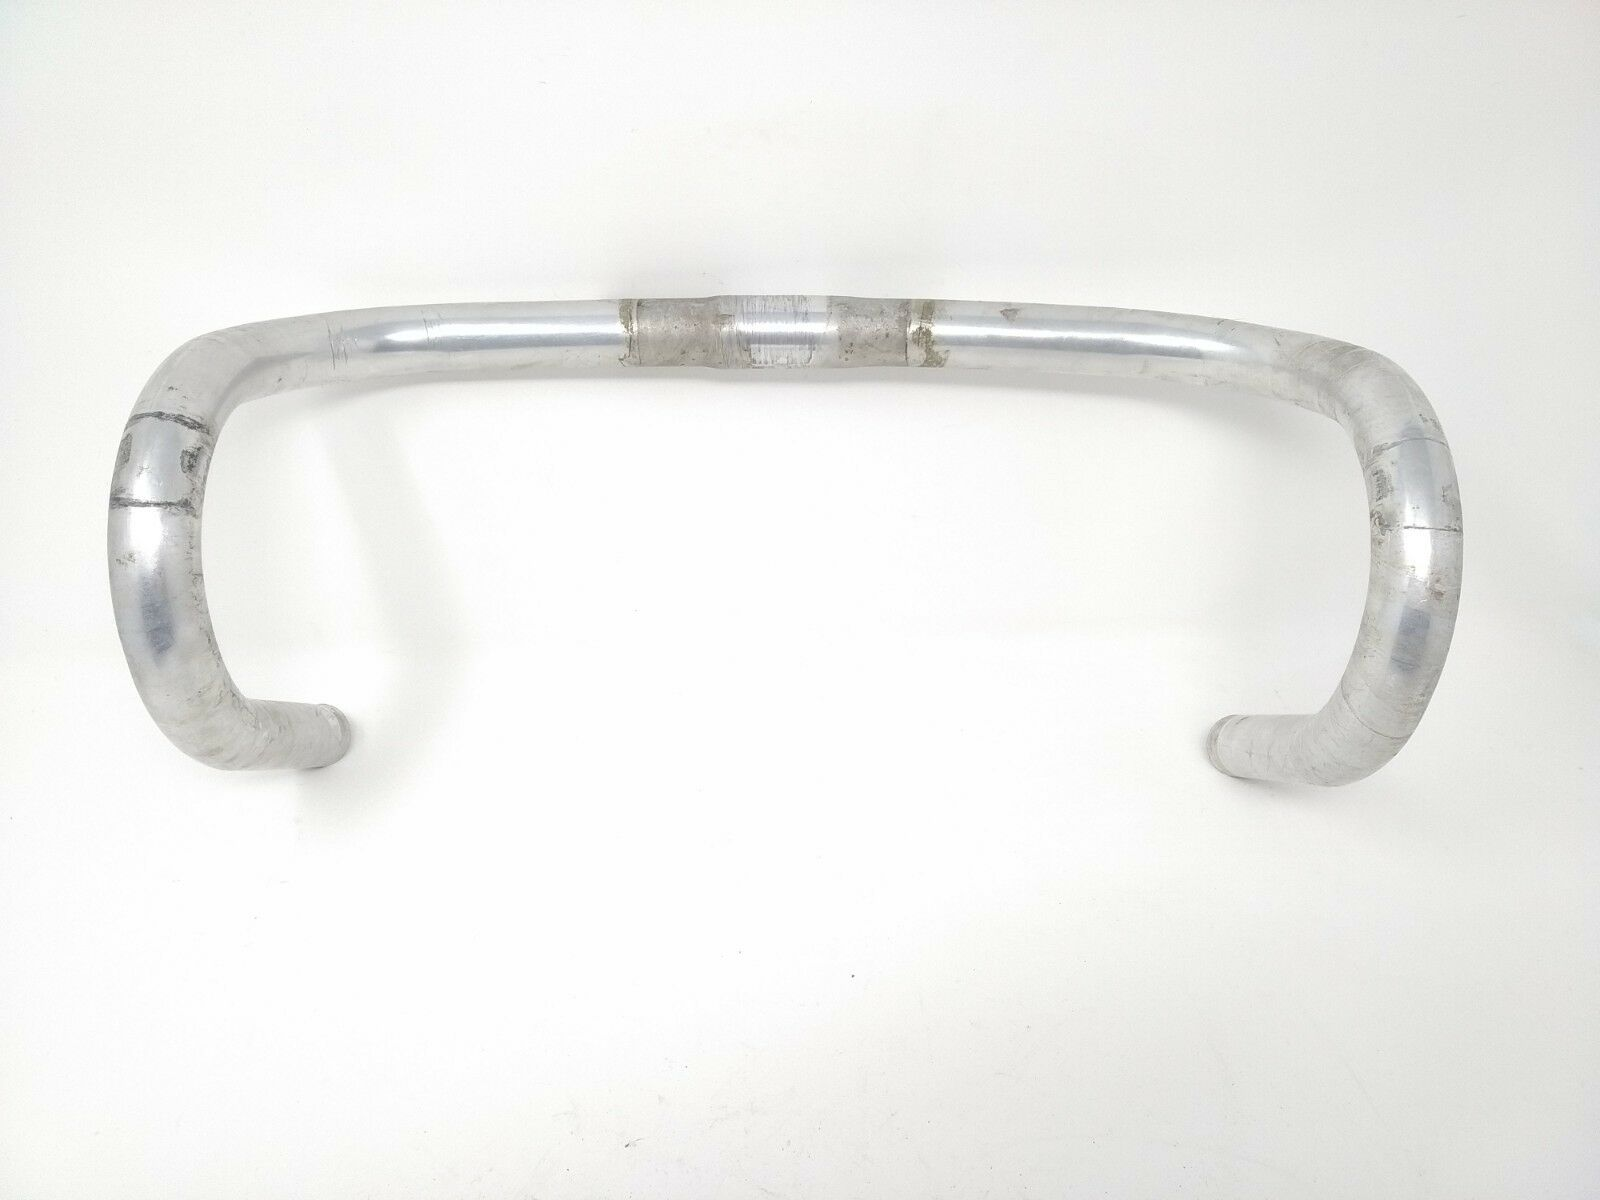 Vintage manubrio curva handlebar 36   corsa road  anno year '50  new products novelty items